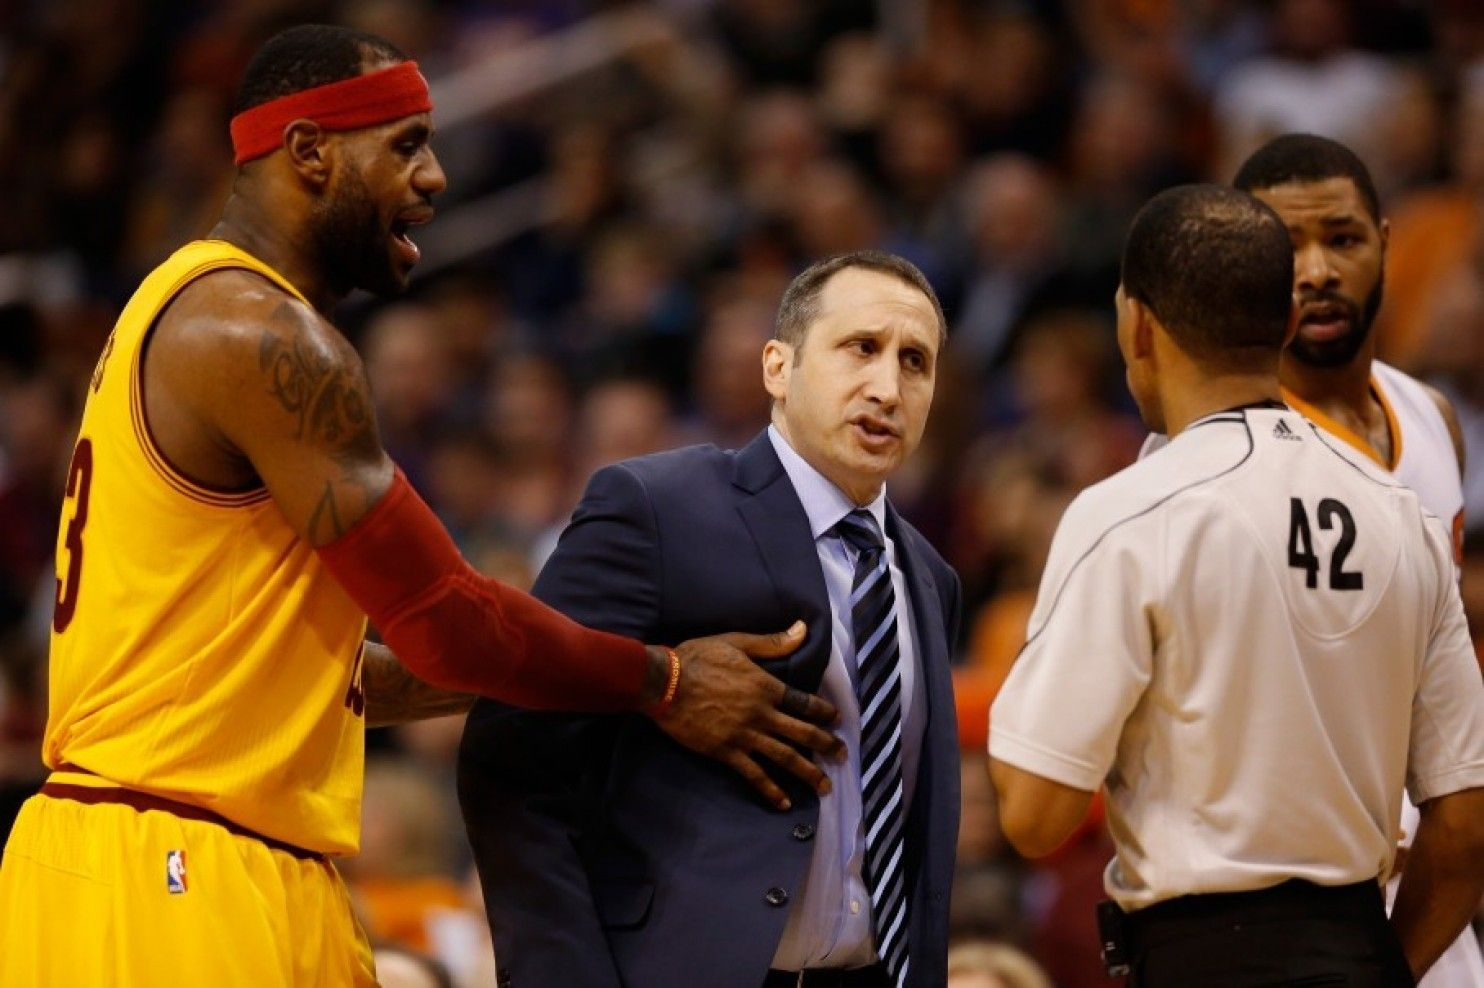 NBA coaches are not happy about the Cavaliers' firing of